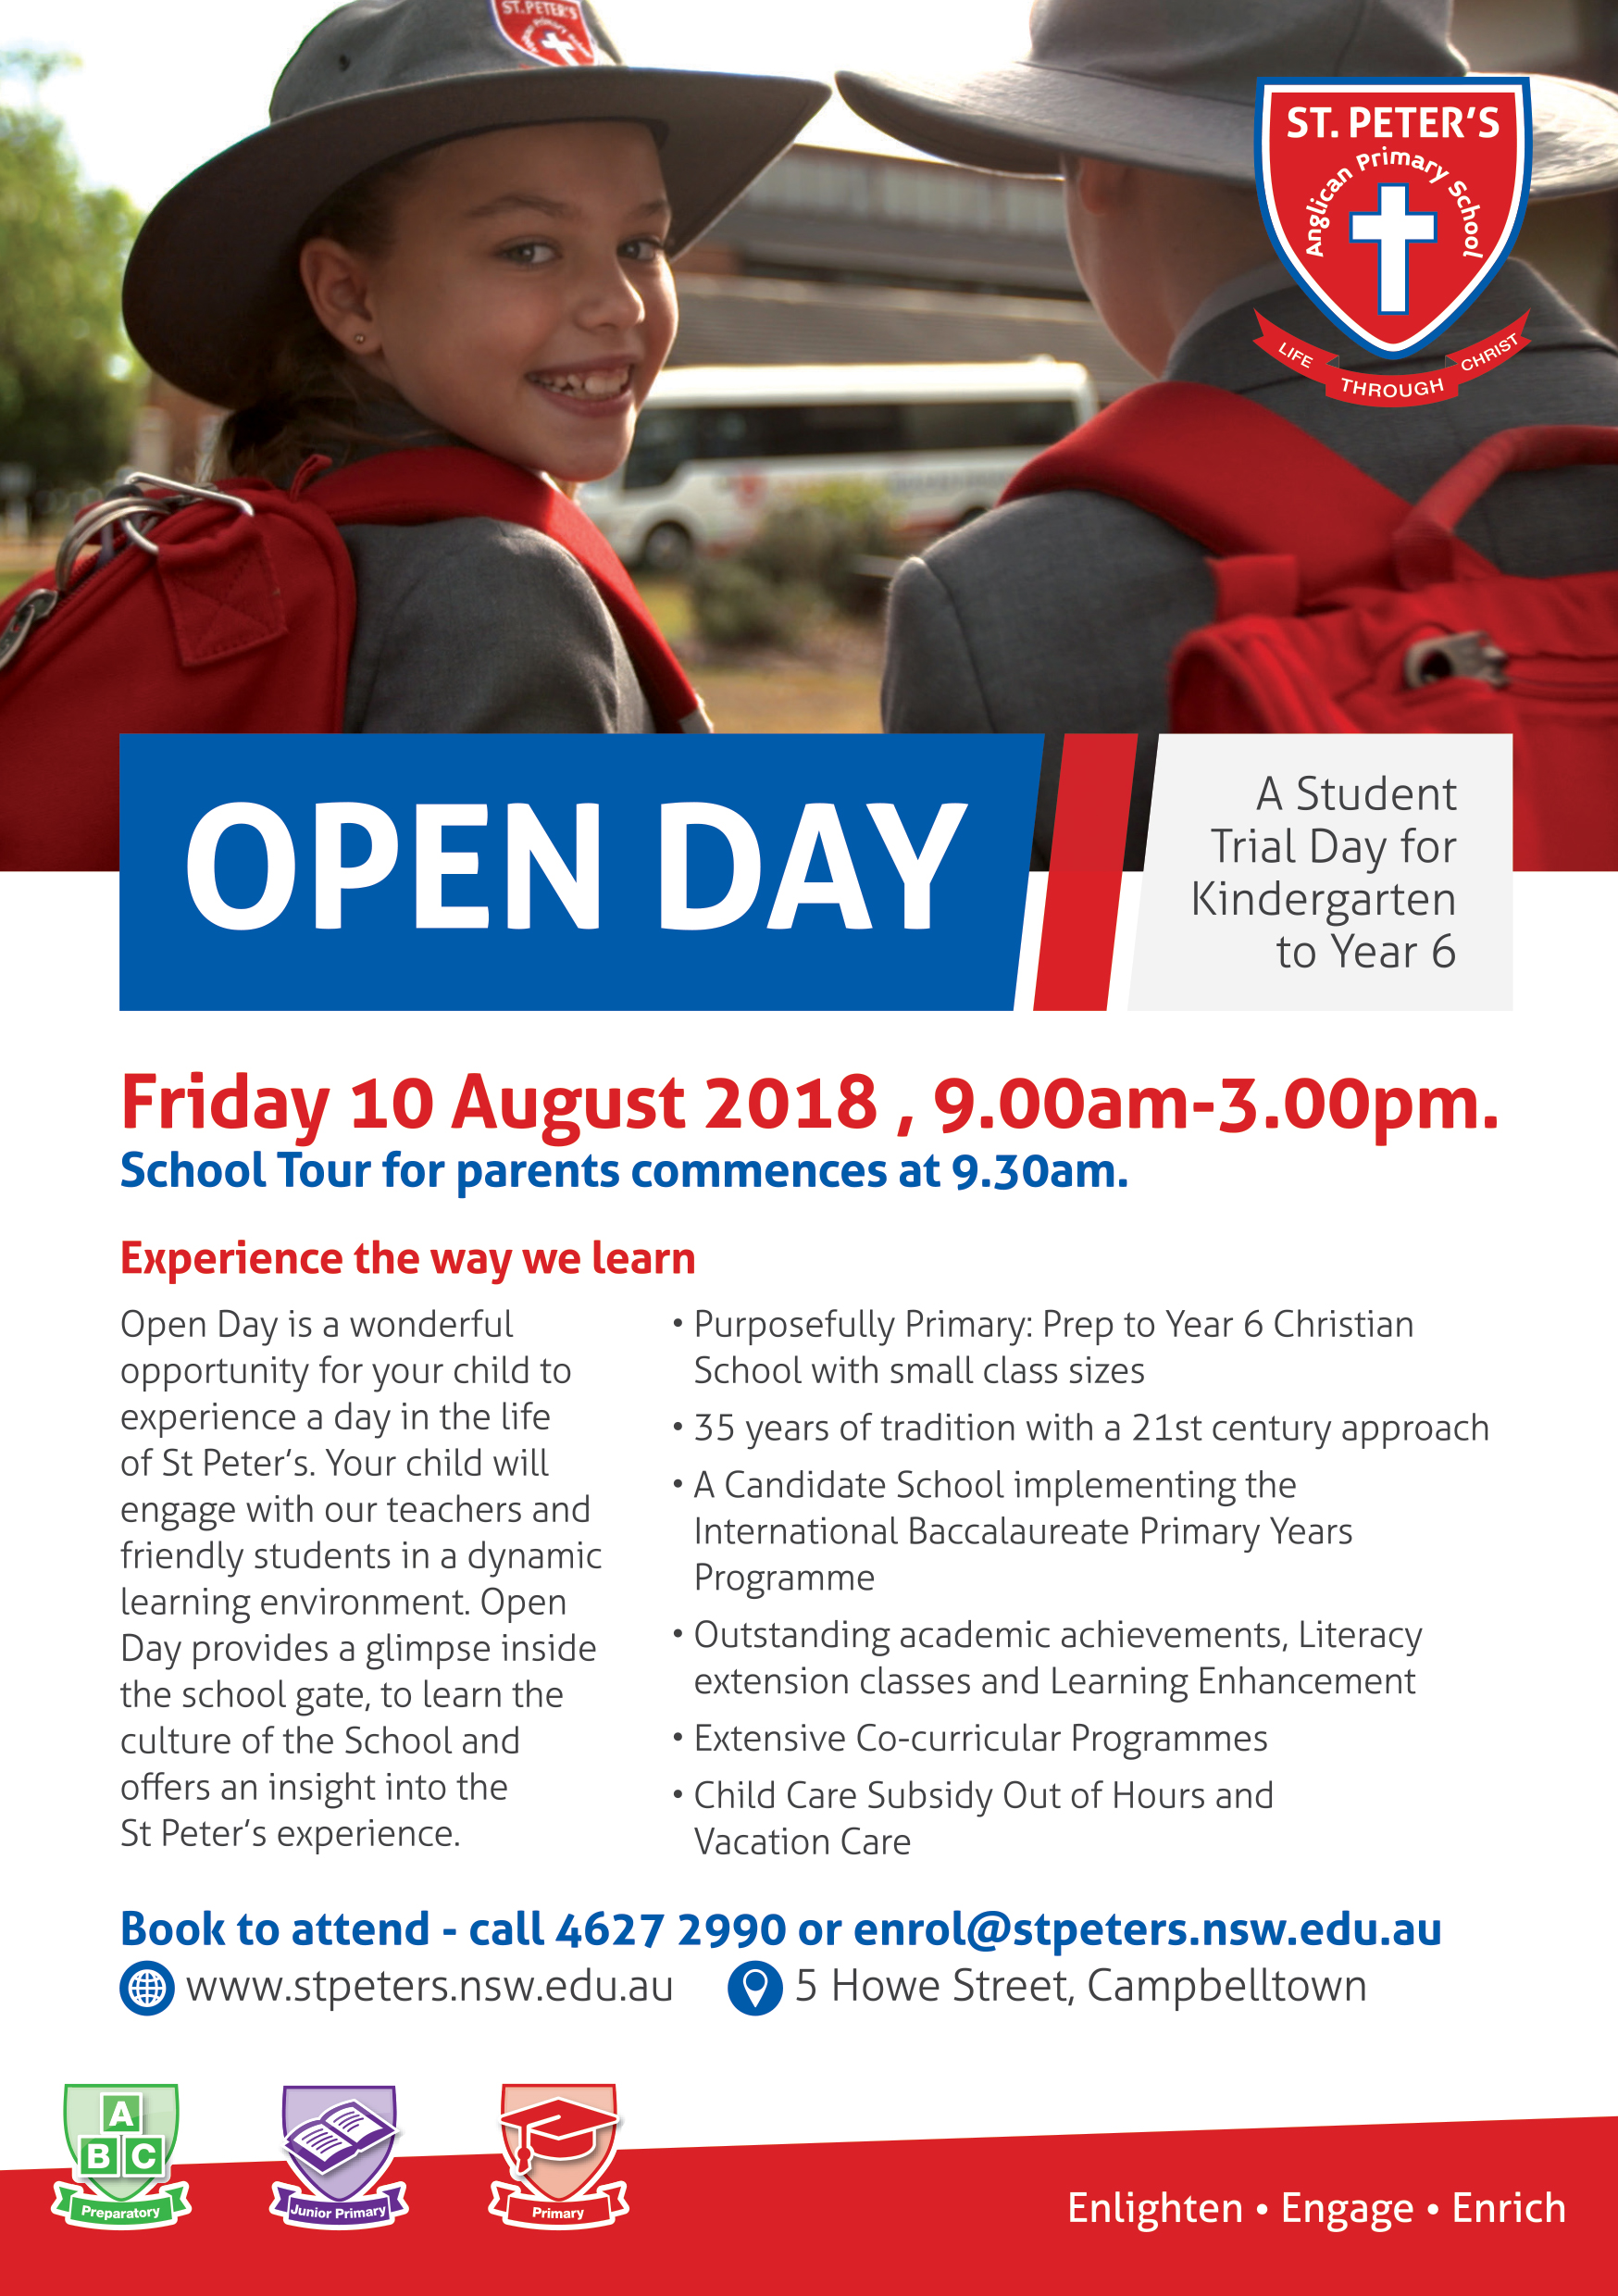 St-Peter's-Anglican-Primary-School_Open-Day-A5-Brochure_Press-1.jpg